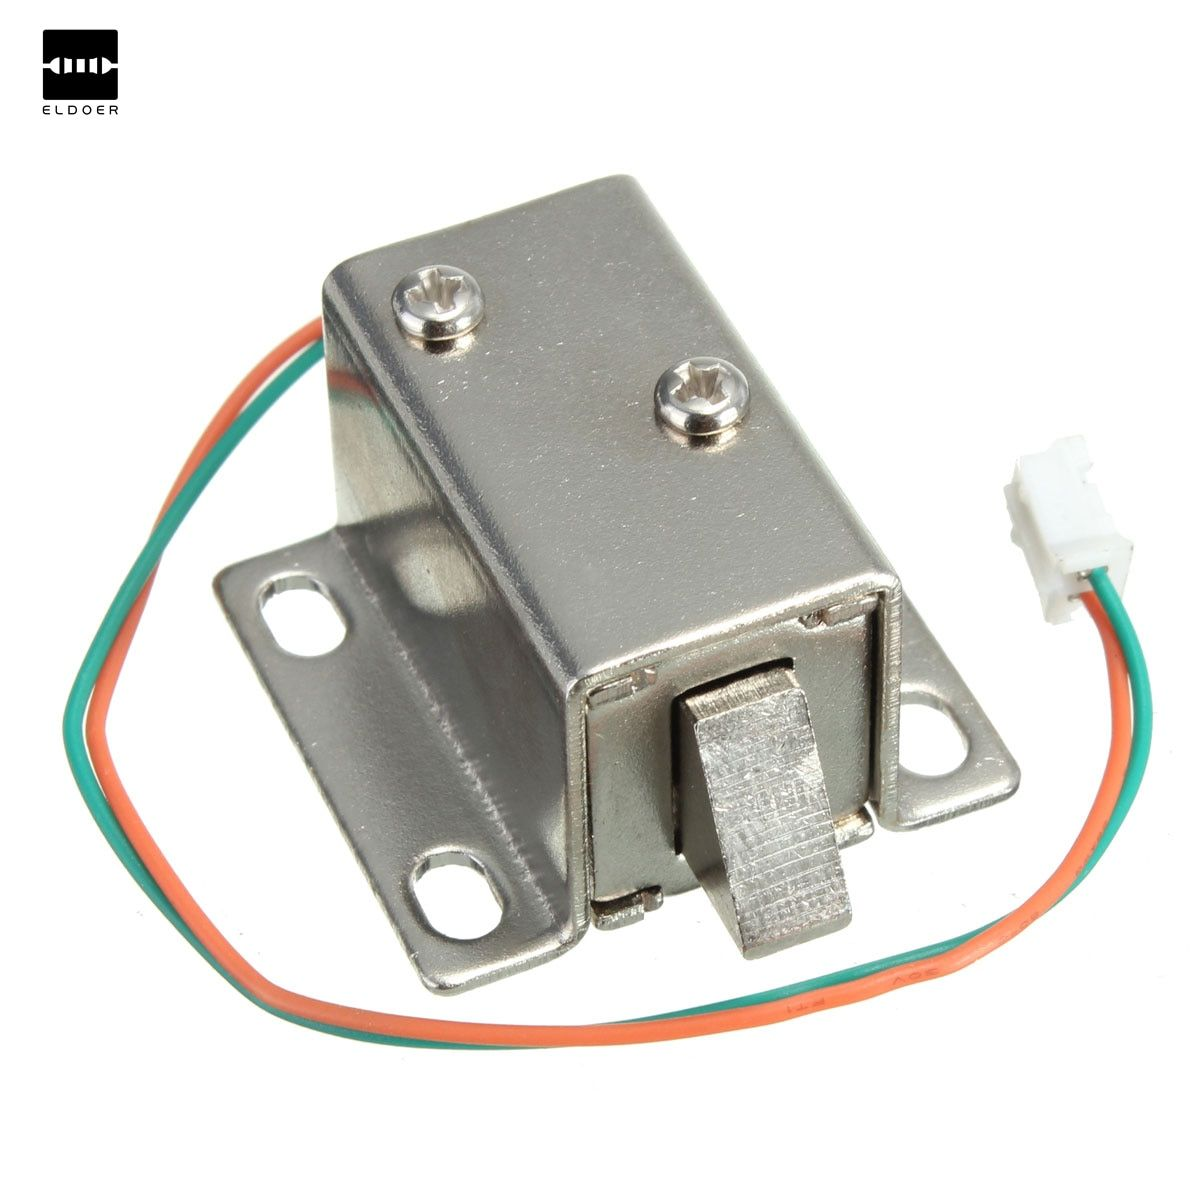 Small 27x29x18mm 12VDC Cabinet Door Drawer Electric Lock Assembly Solenoid Lock Durable in use New Electric Unit Solenoids